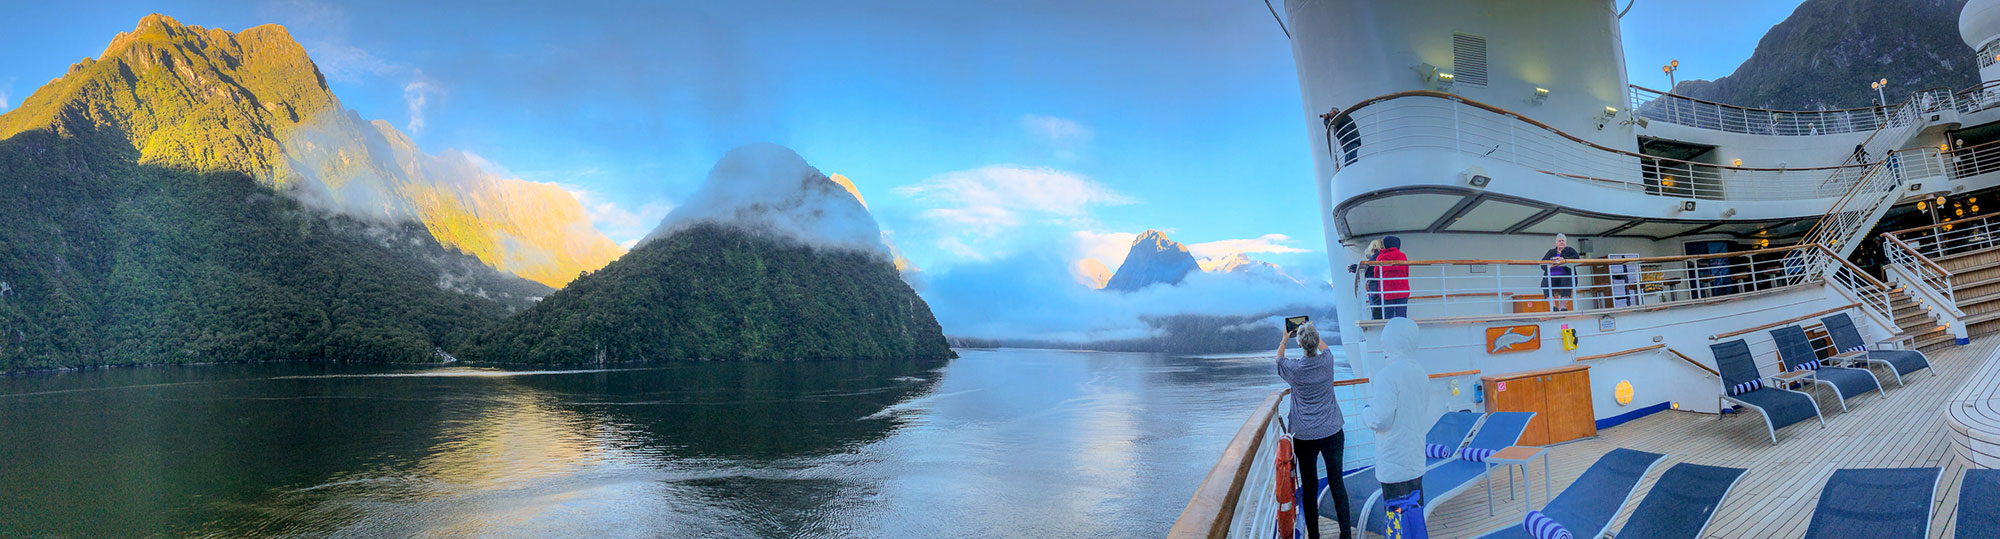 Milford Sound viewed from the Golden Princess, Fiordland National Park in New Zealand